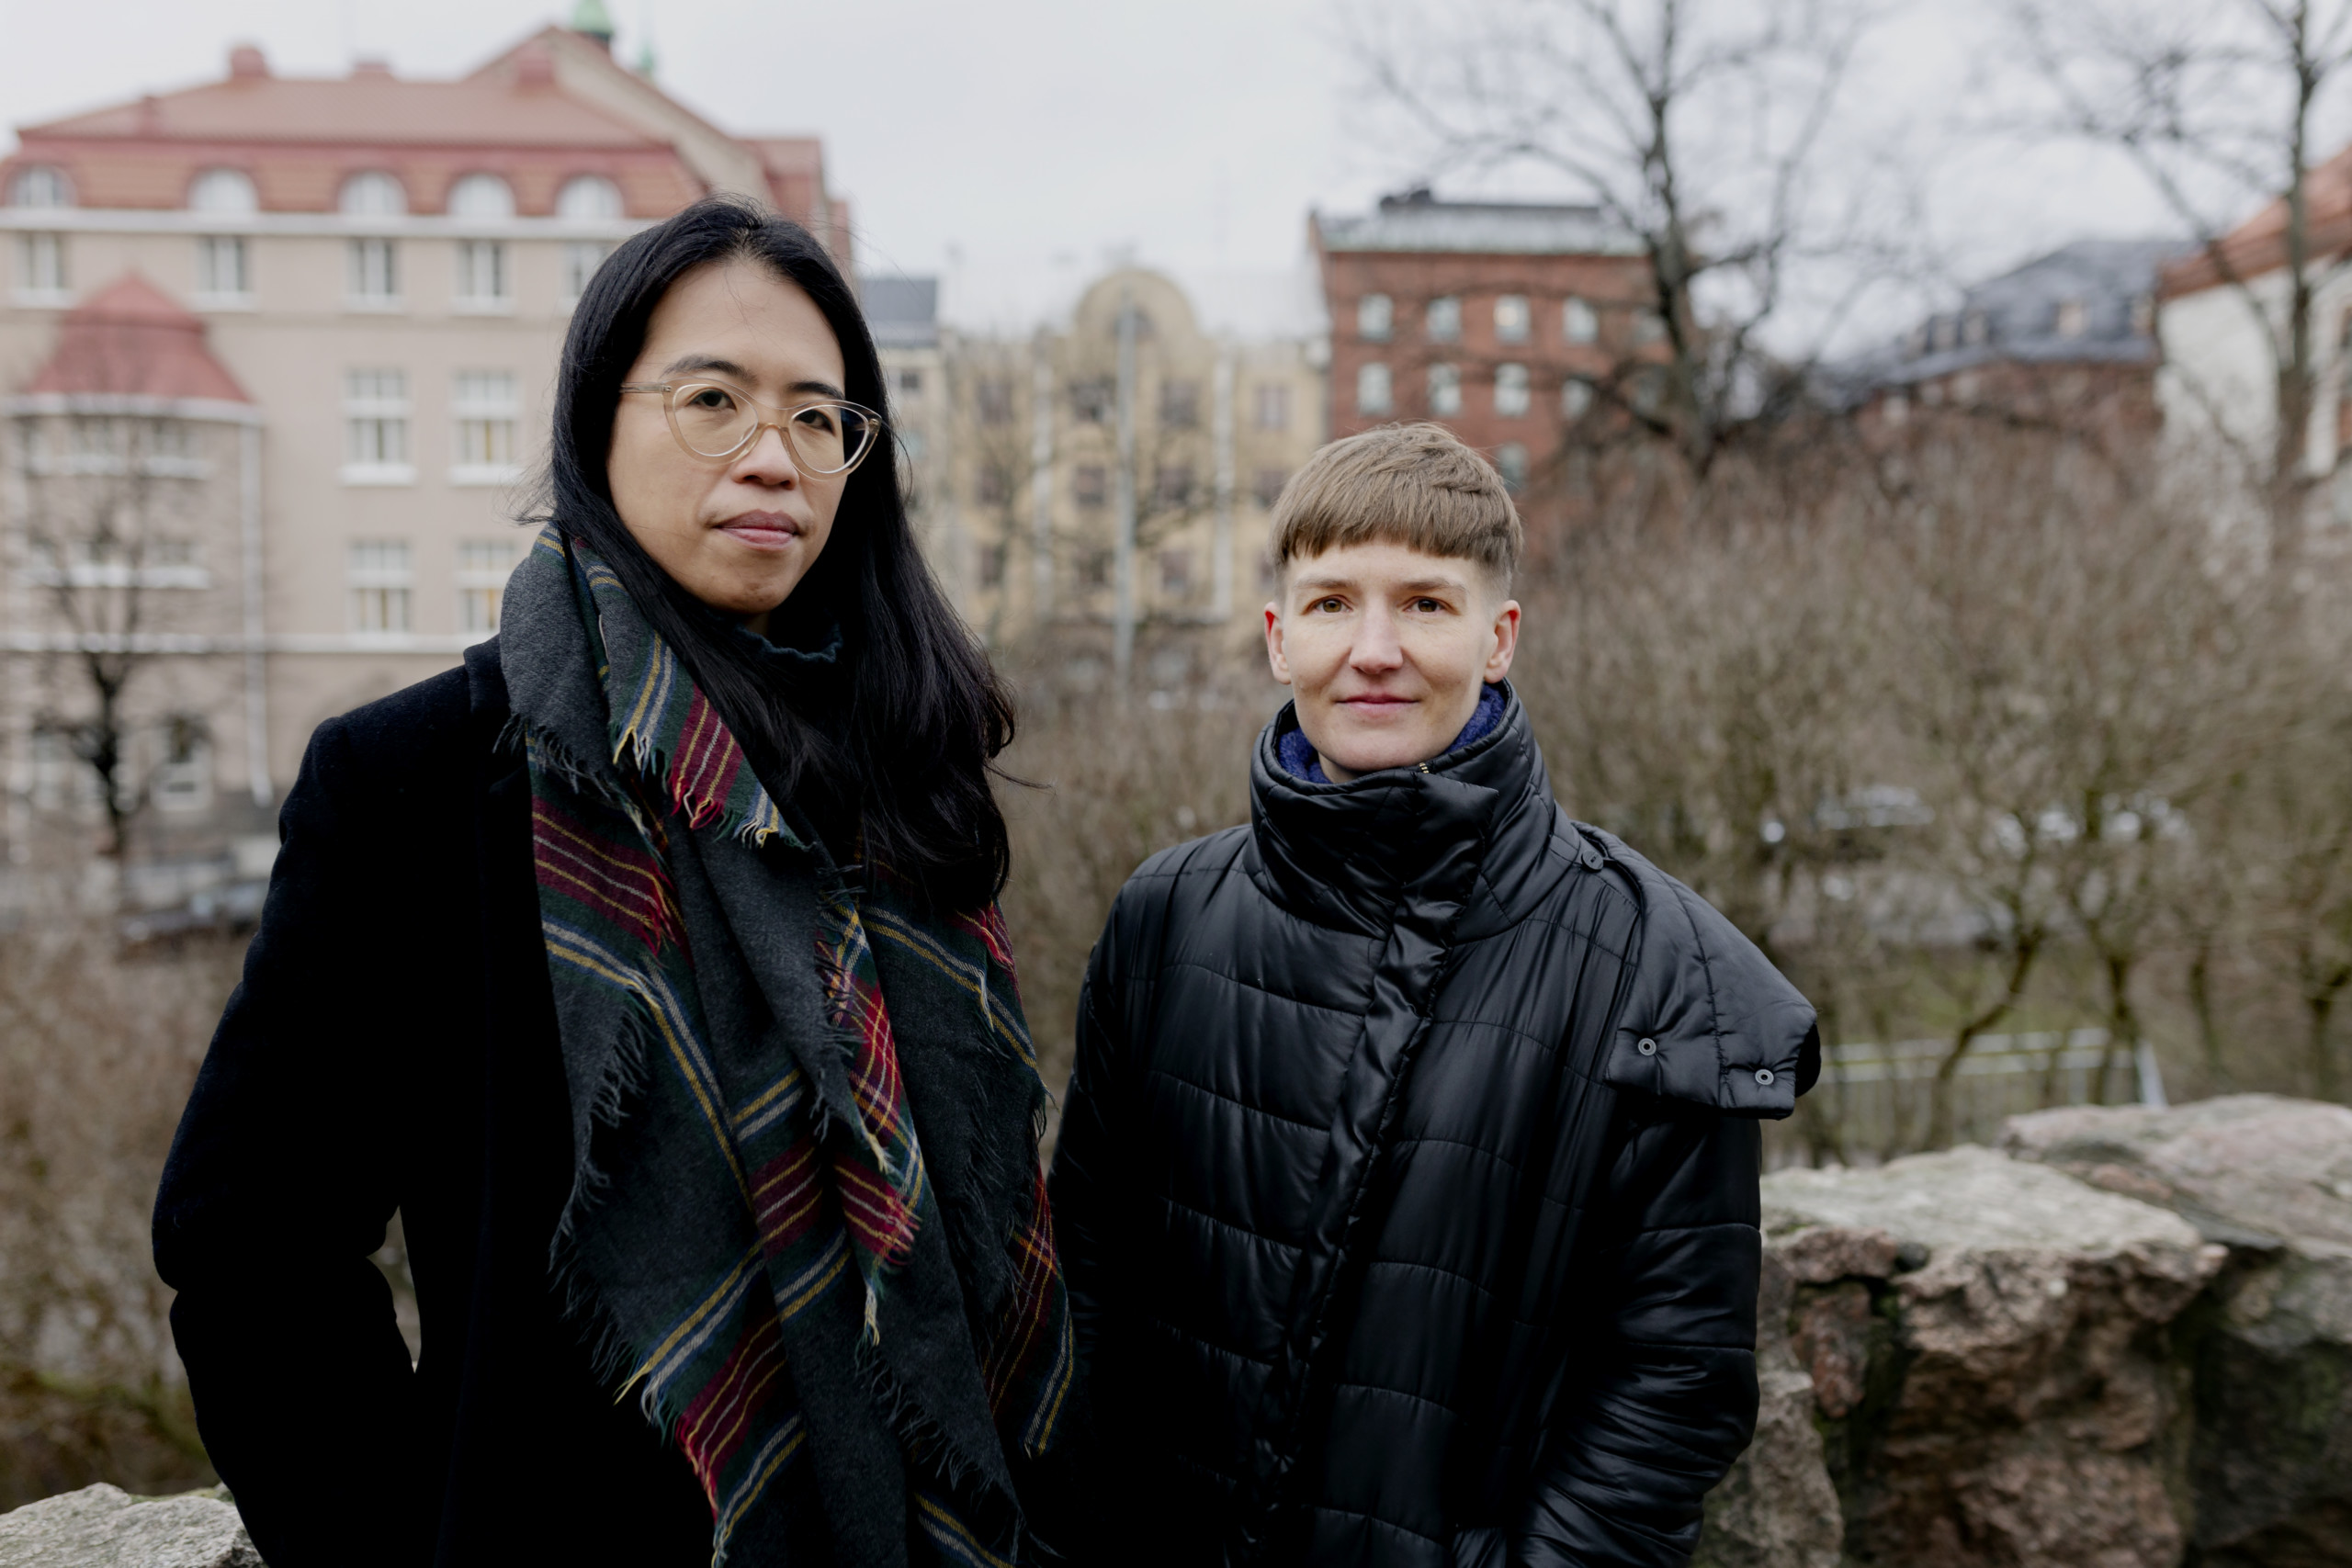 Christina Li and Pilvi Takala in a picture together against a wintery park view in Helsinki.